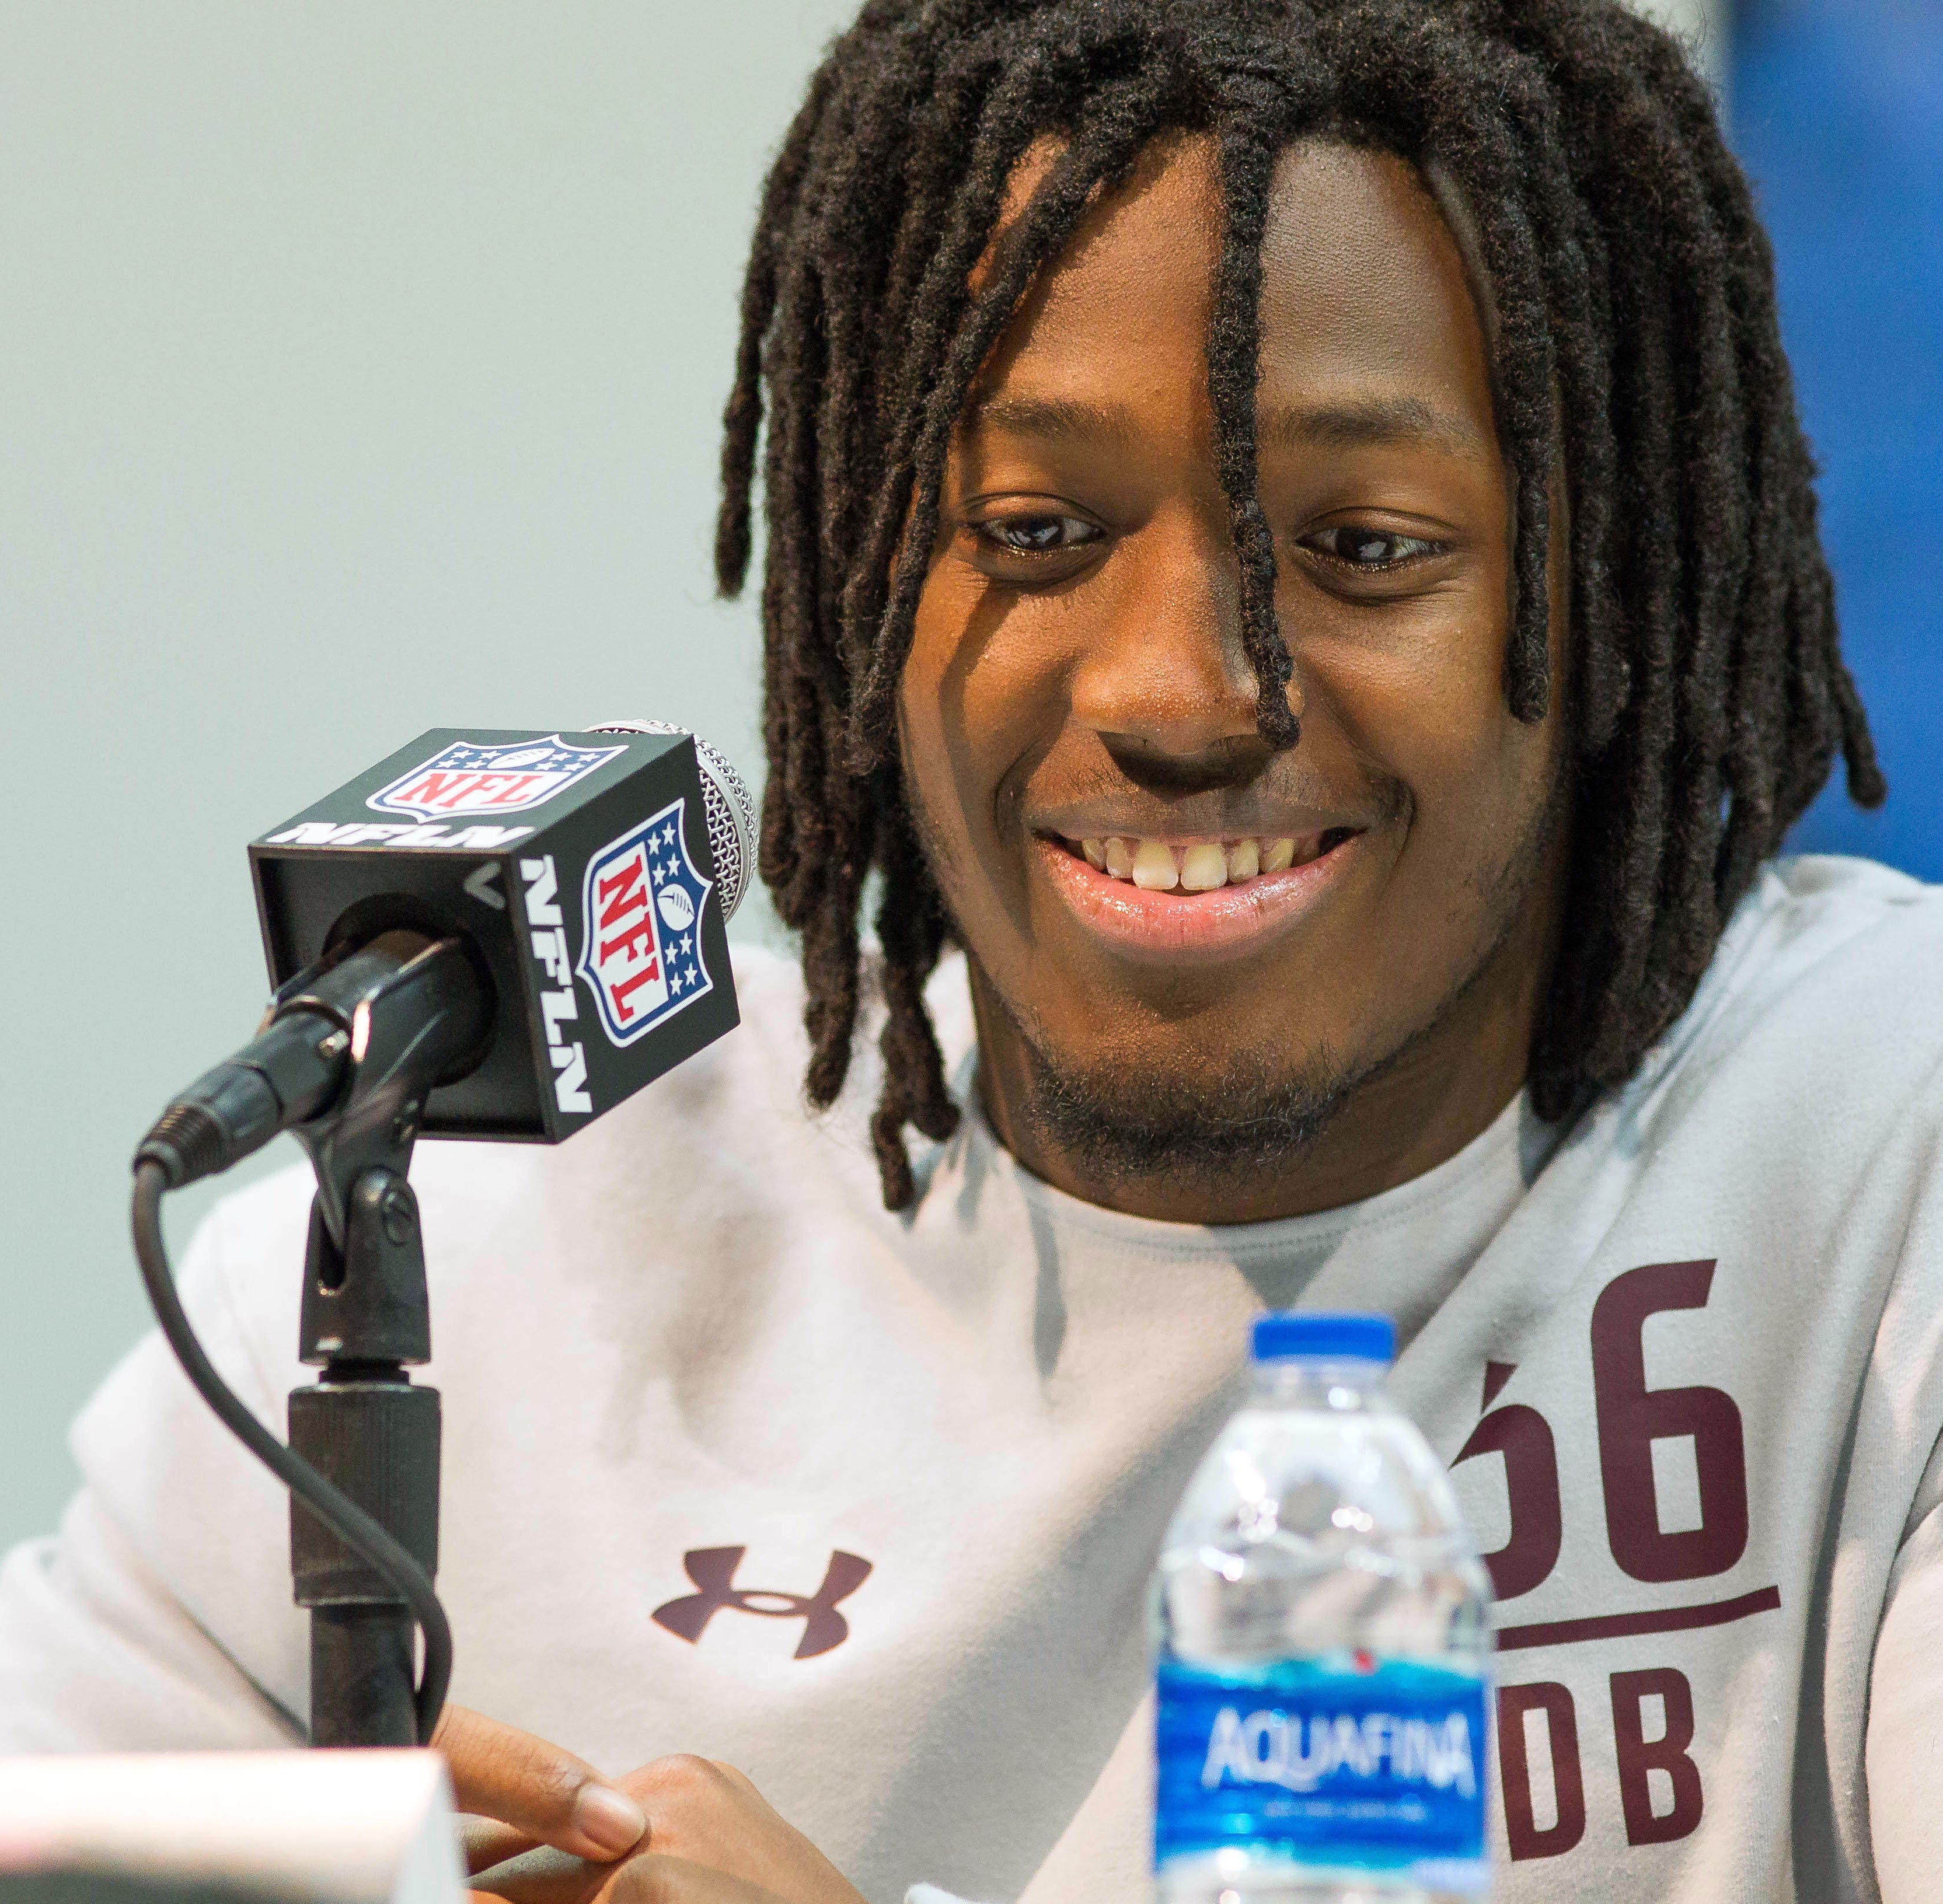 Indianapolis Colts NFL Draft picks 2019: Round-by-round selections, grades